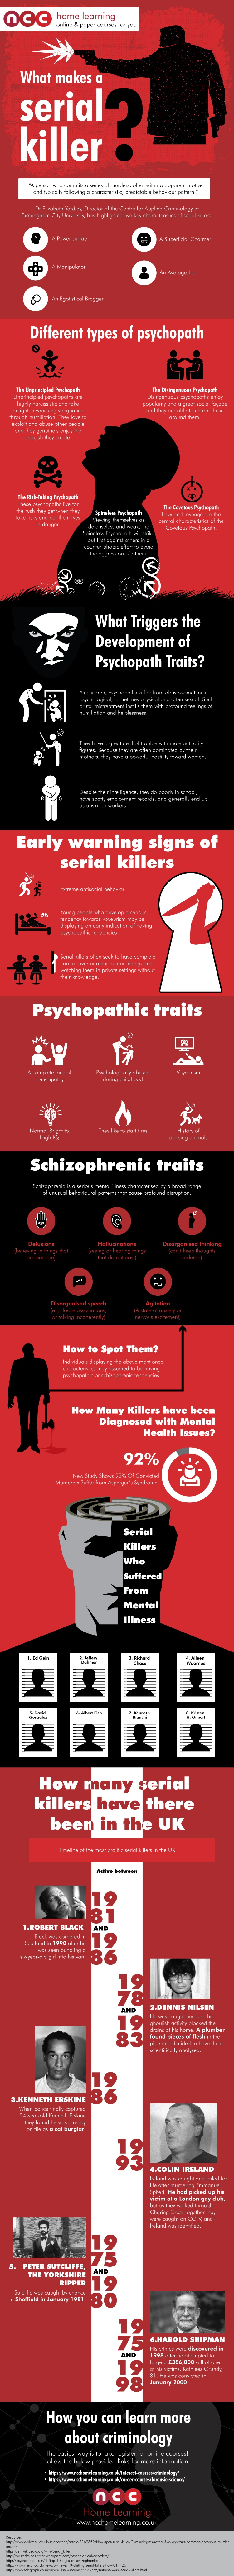 What makes a serial killer infographic